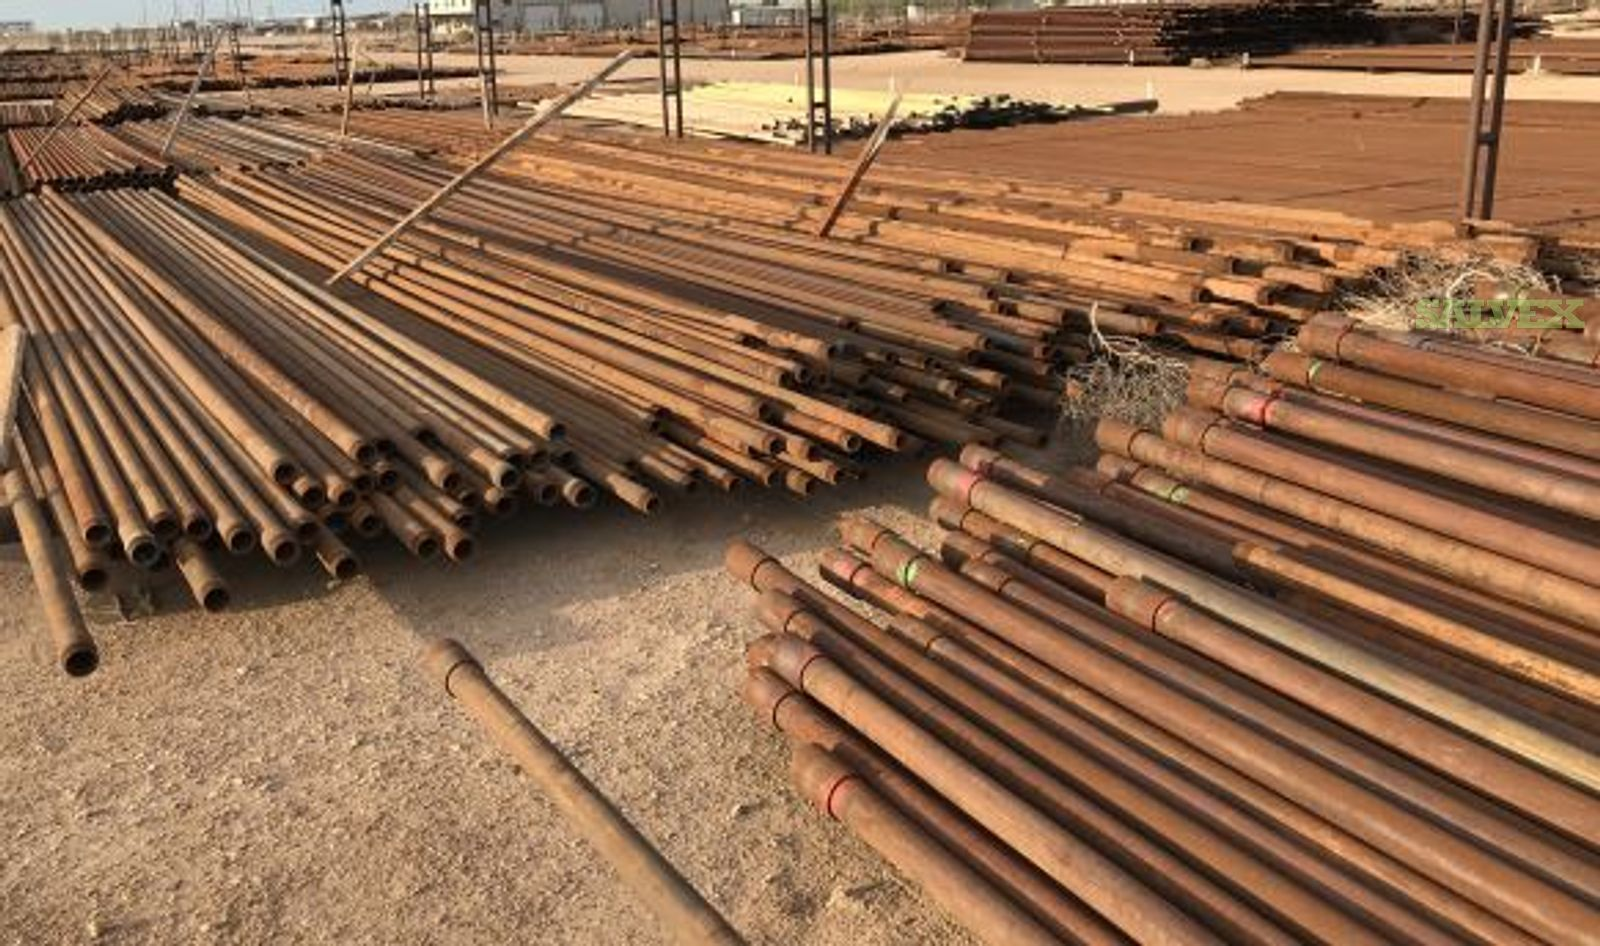 2 7/8 6.50# R2 Structural Tubing (456,480 Feet / 1,346 Metric Tons)